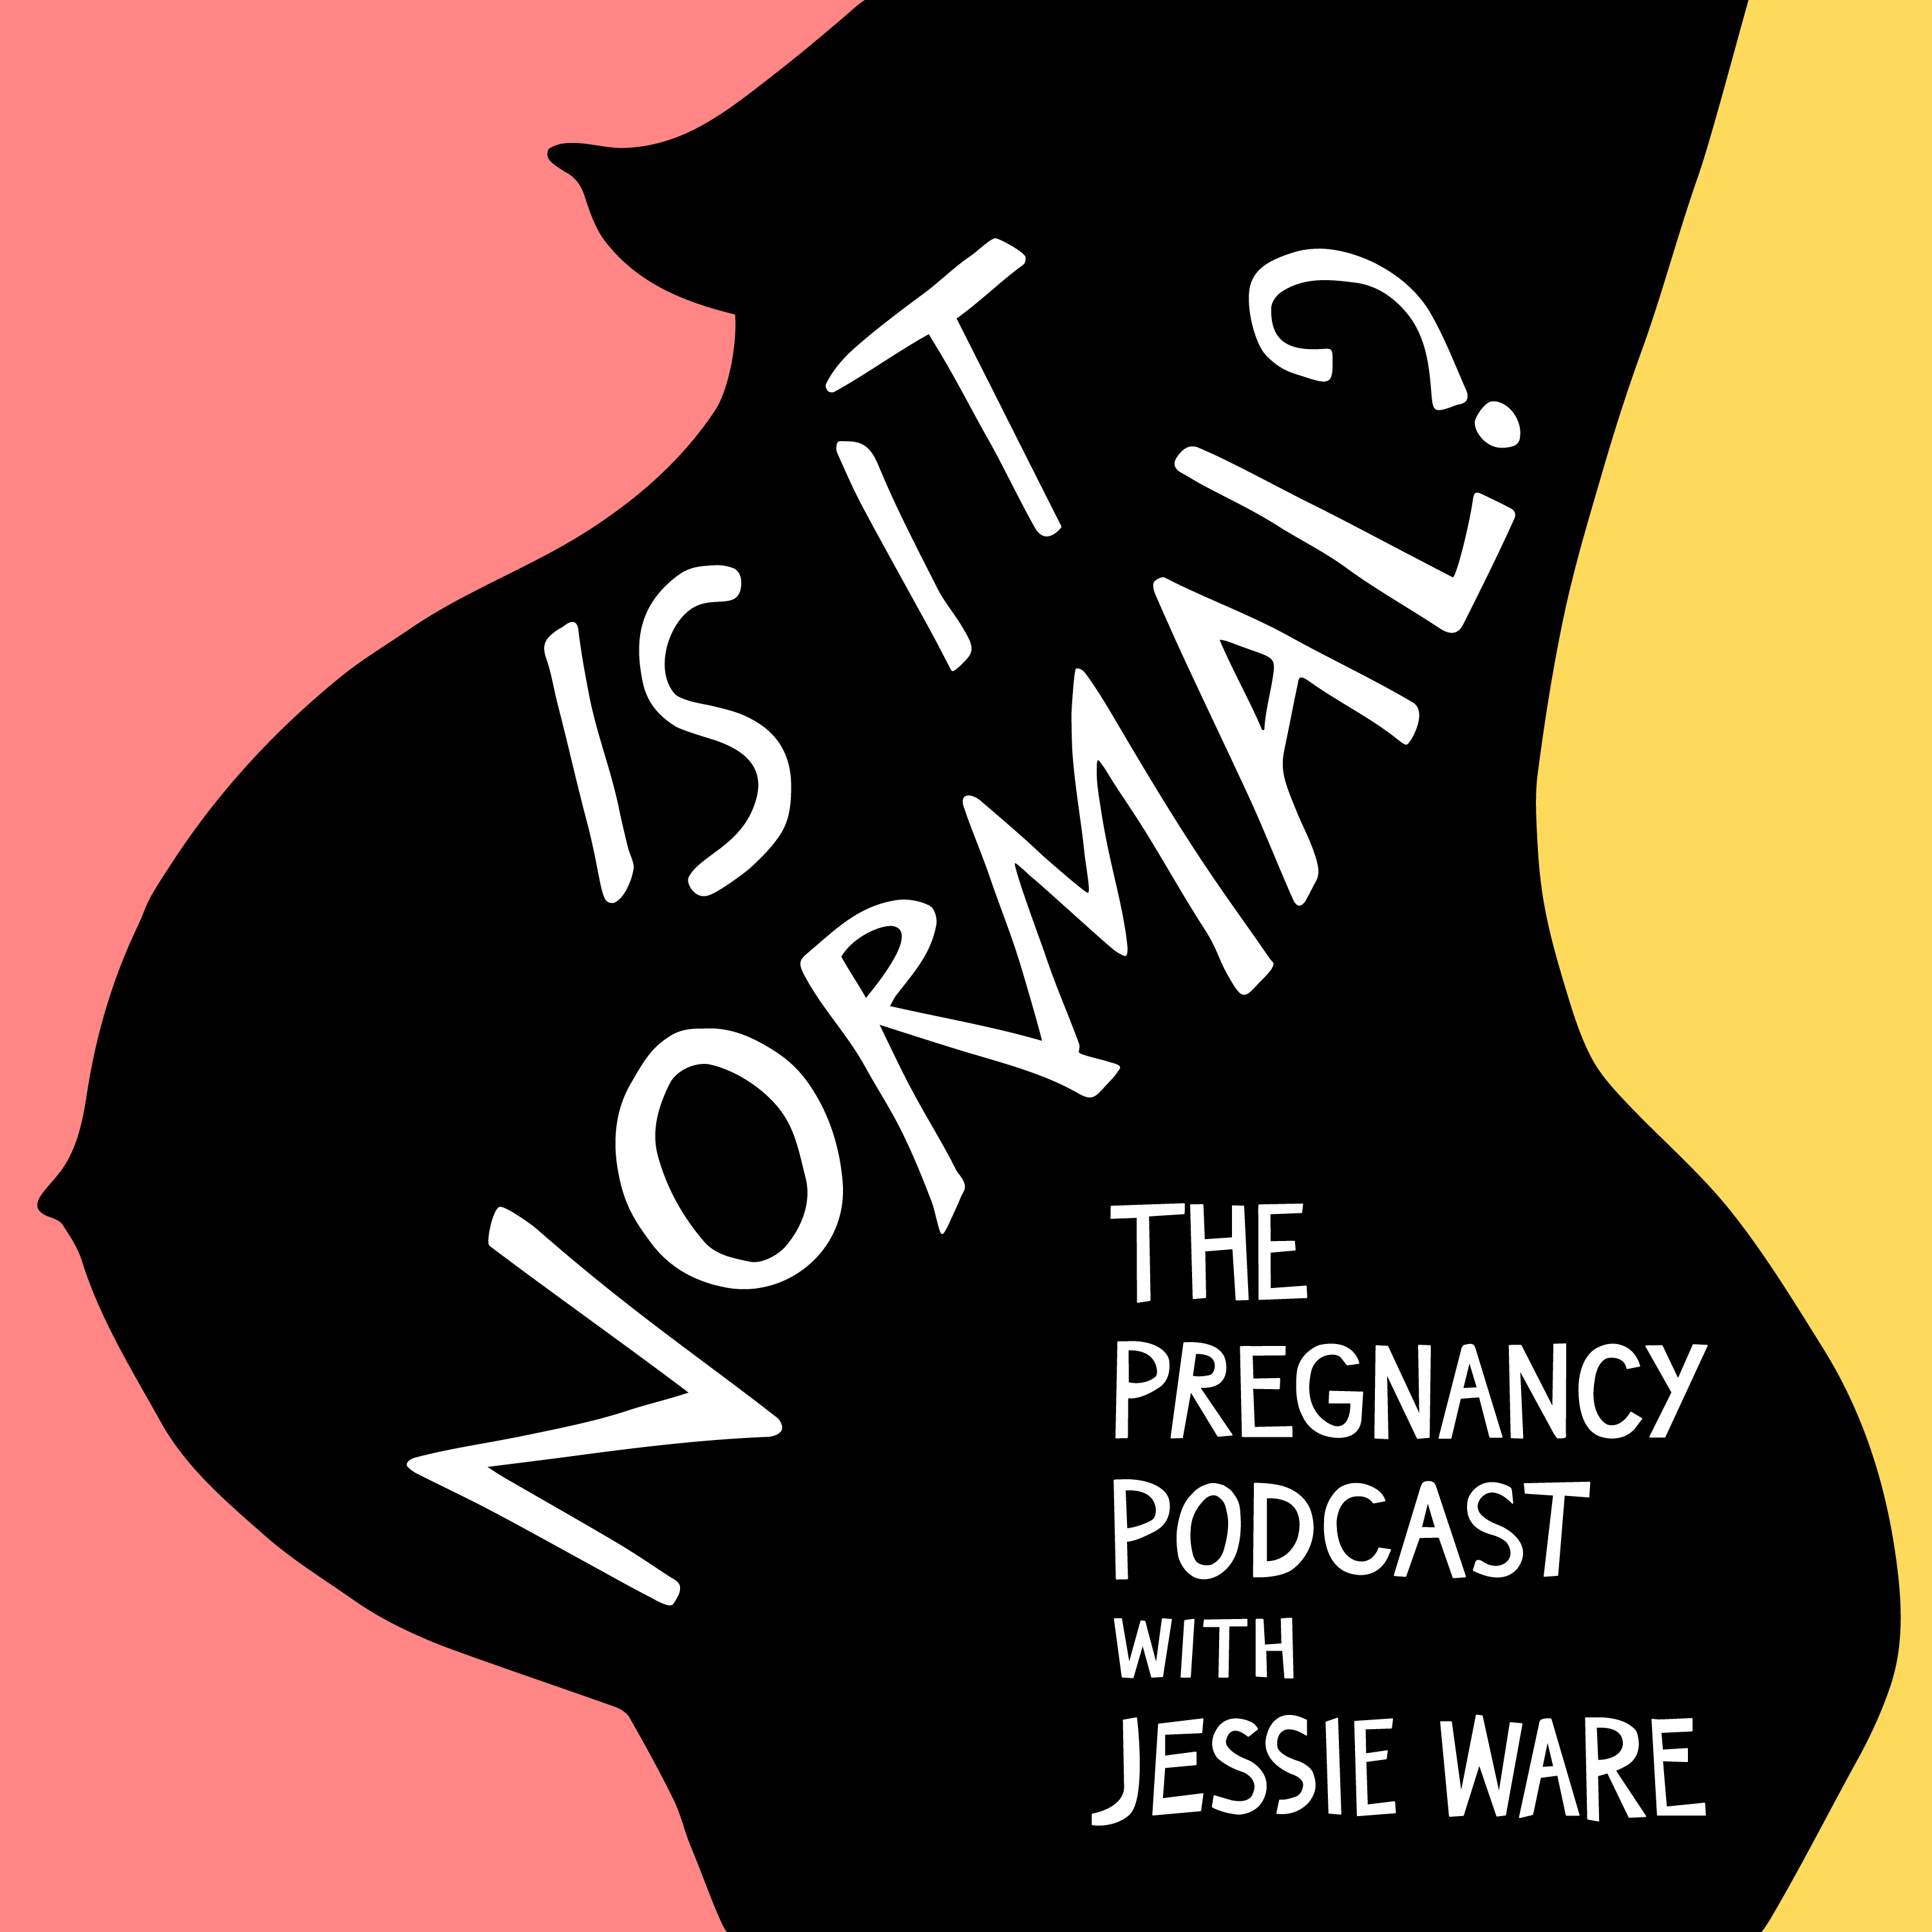 Ep 8 - Weeks 18-20 of your pregnancy